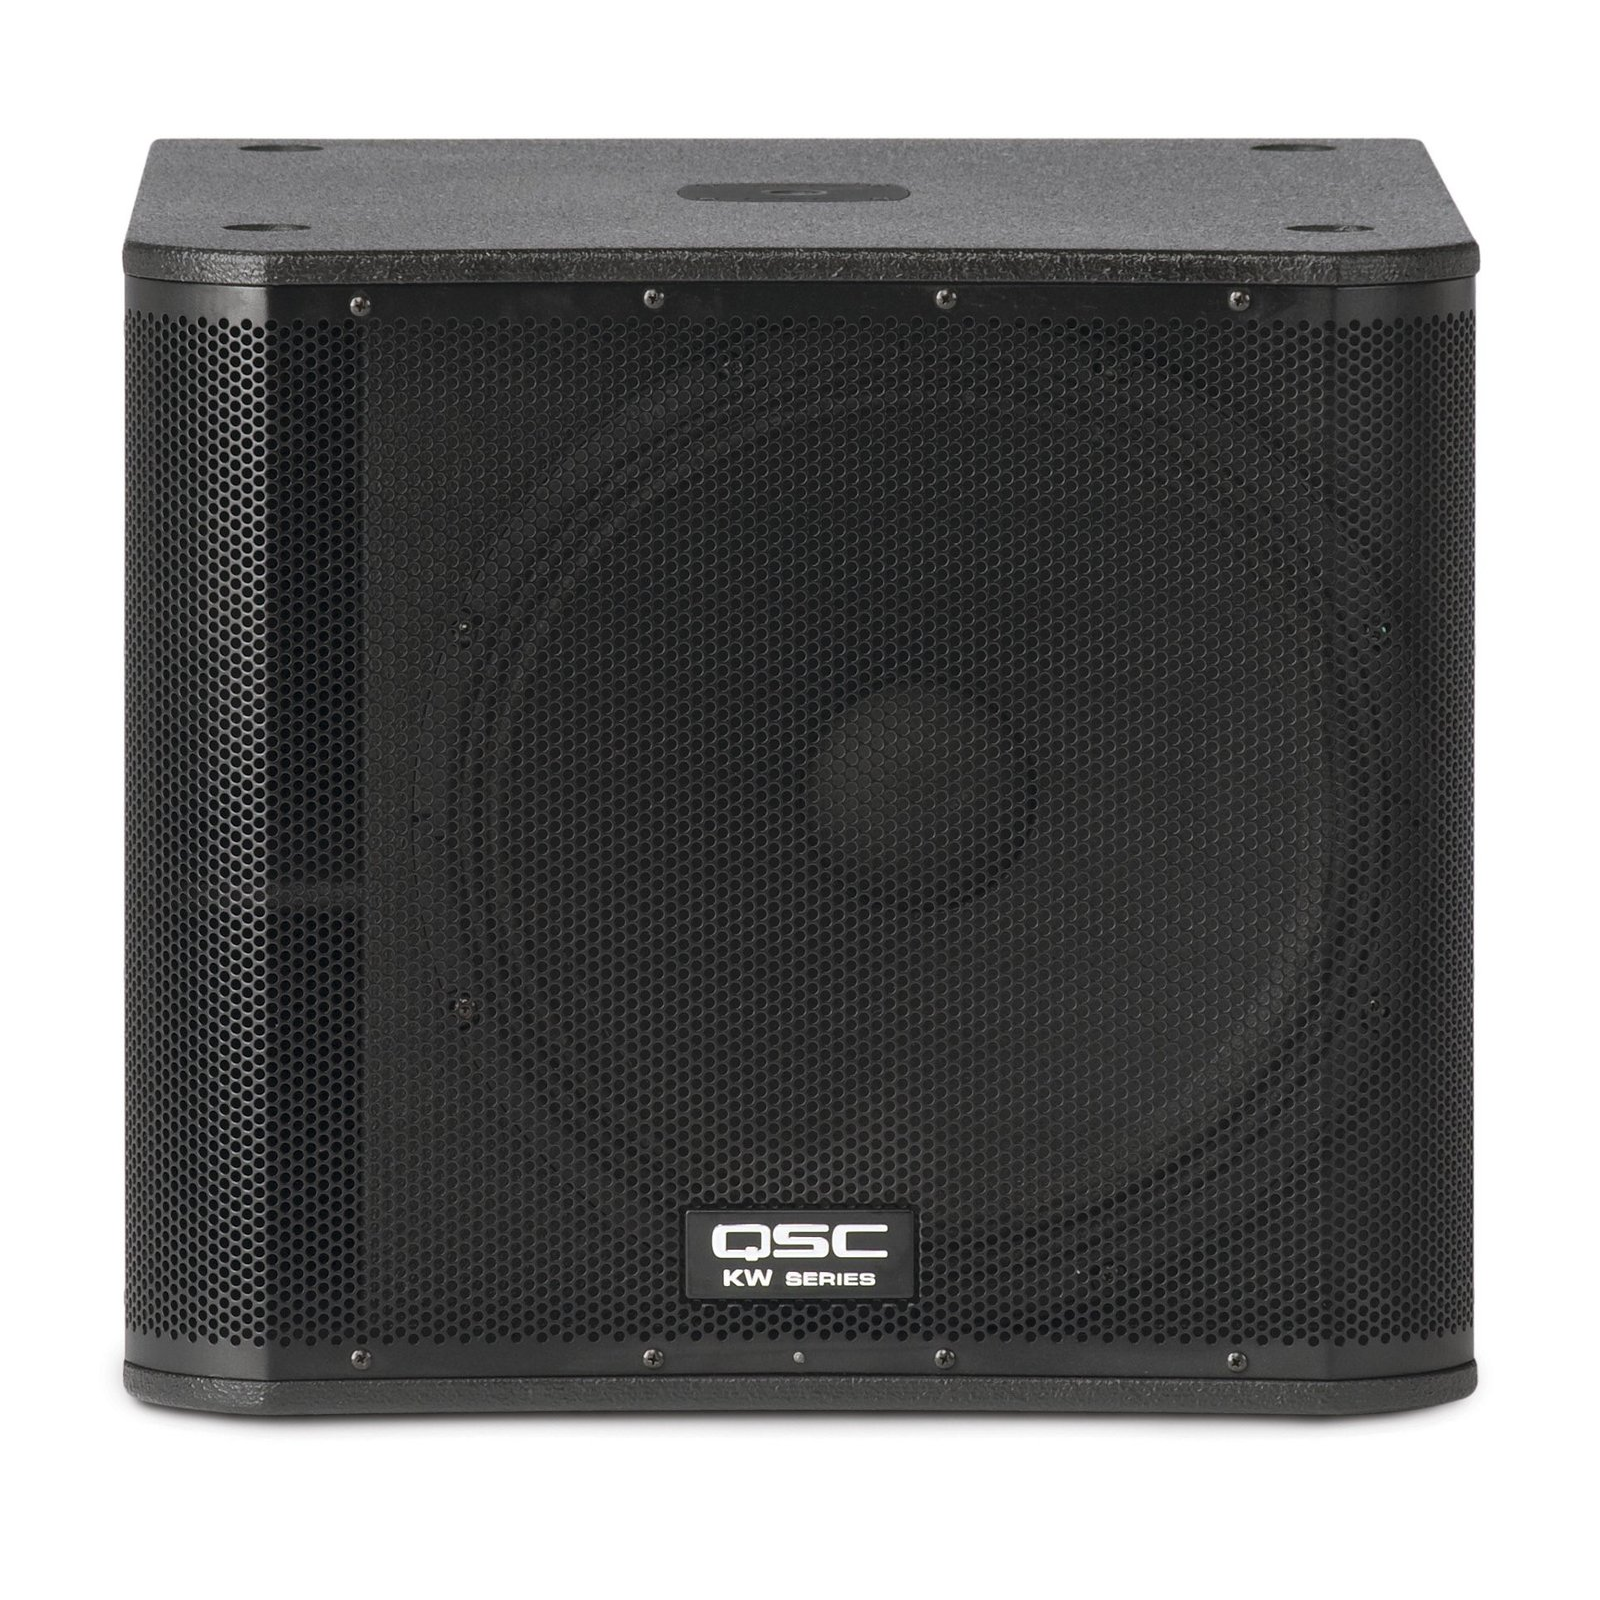 QSC KW-181 1000 Watts Powered Subwoofer